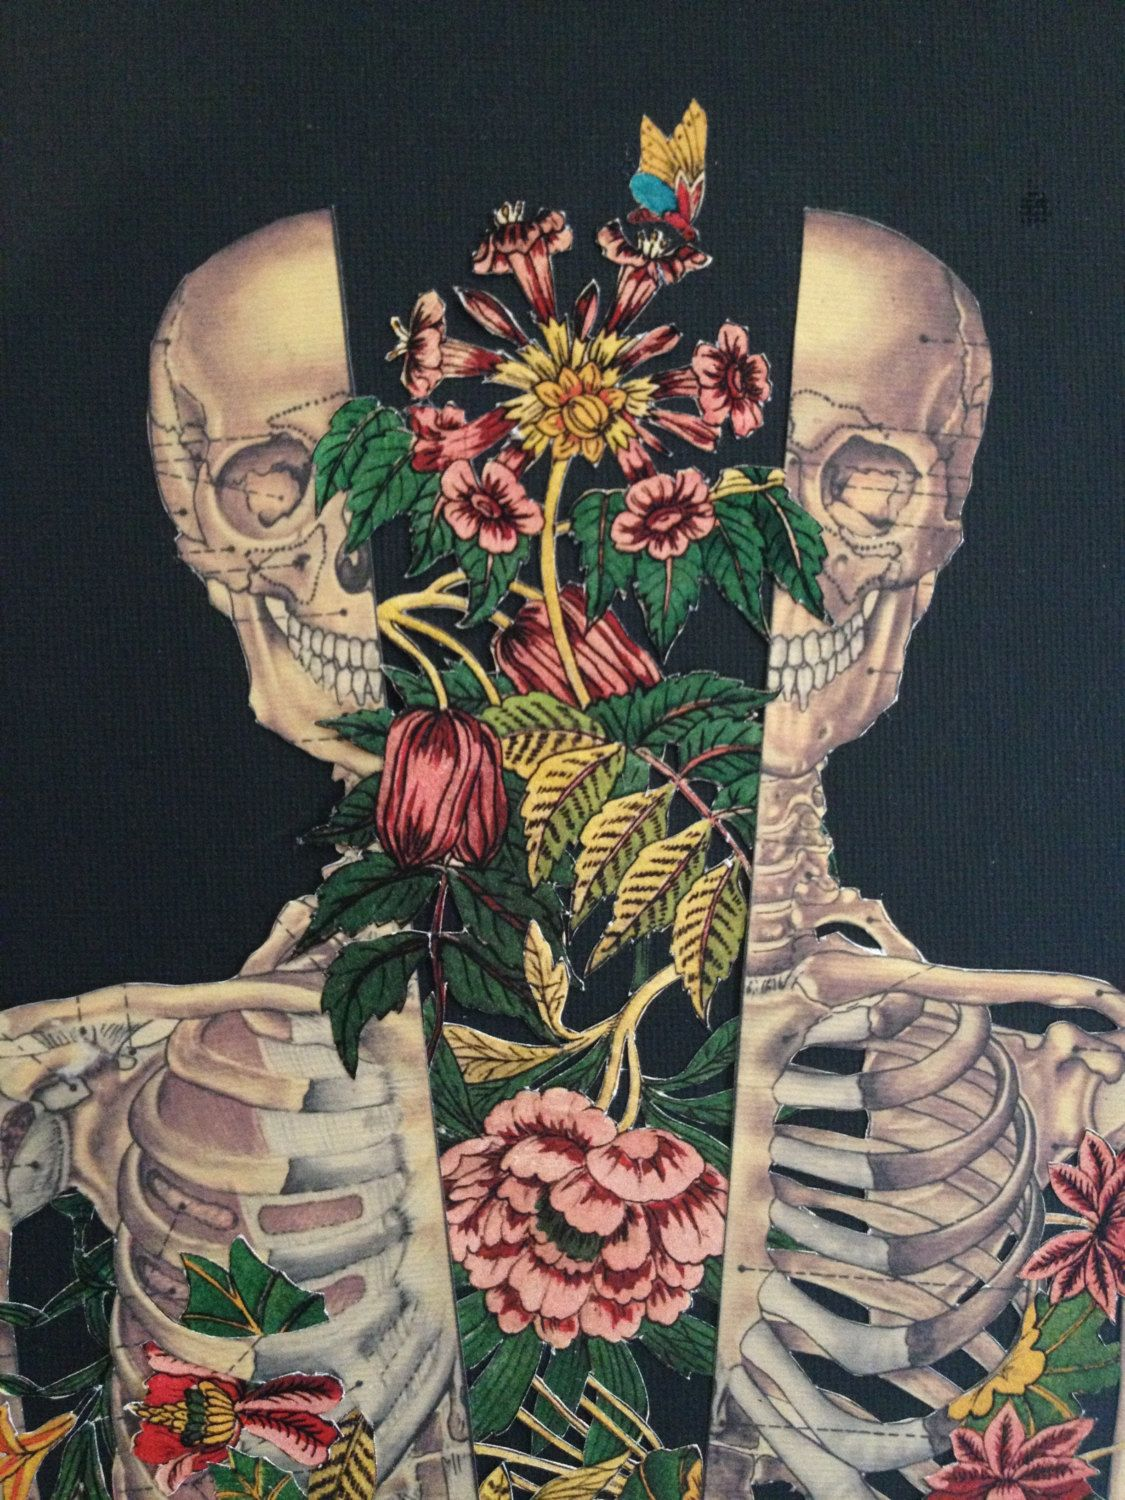 growth within anatomical anatomy collage art by di Bedelgeuse ossein